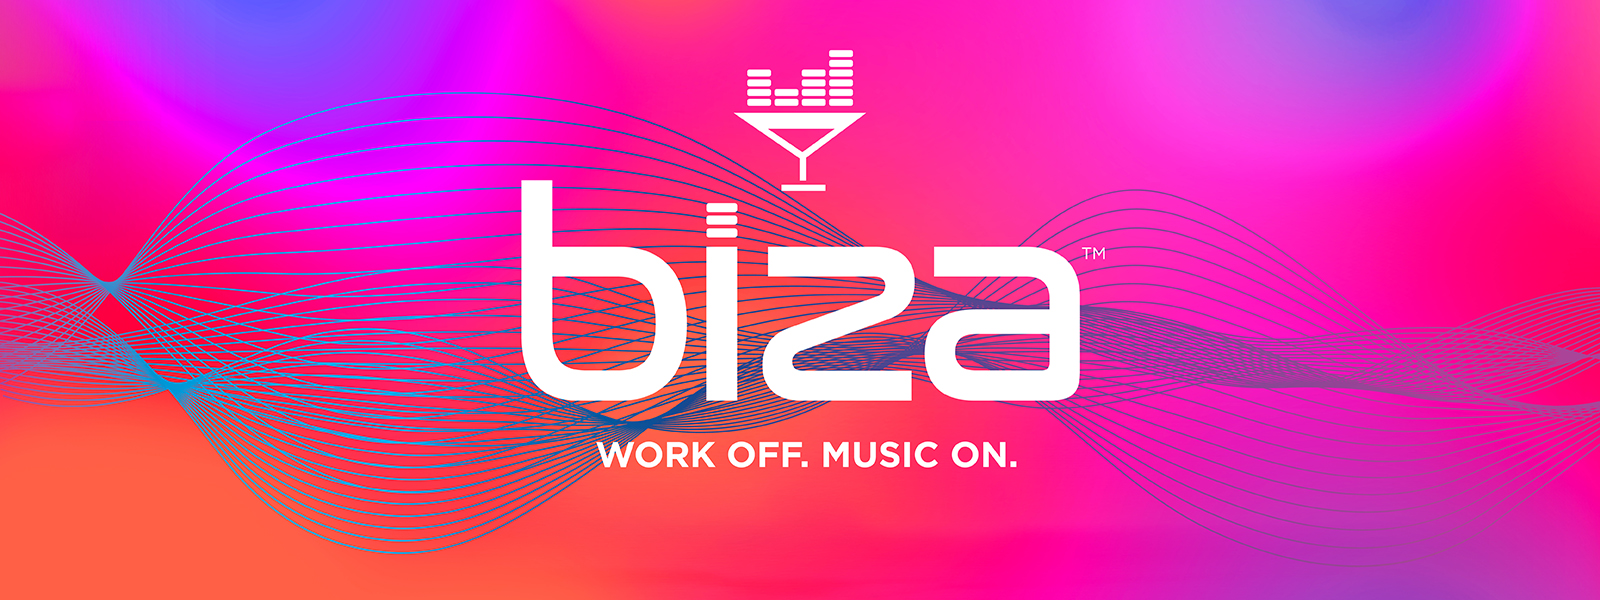 Biza Logo on a color background showing music waves.